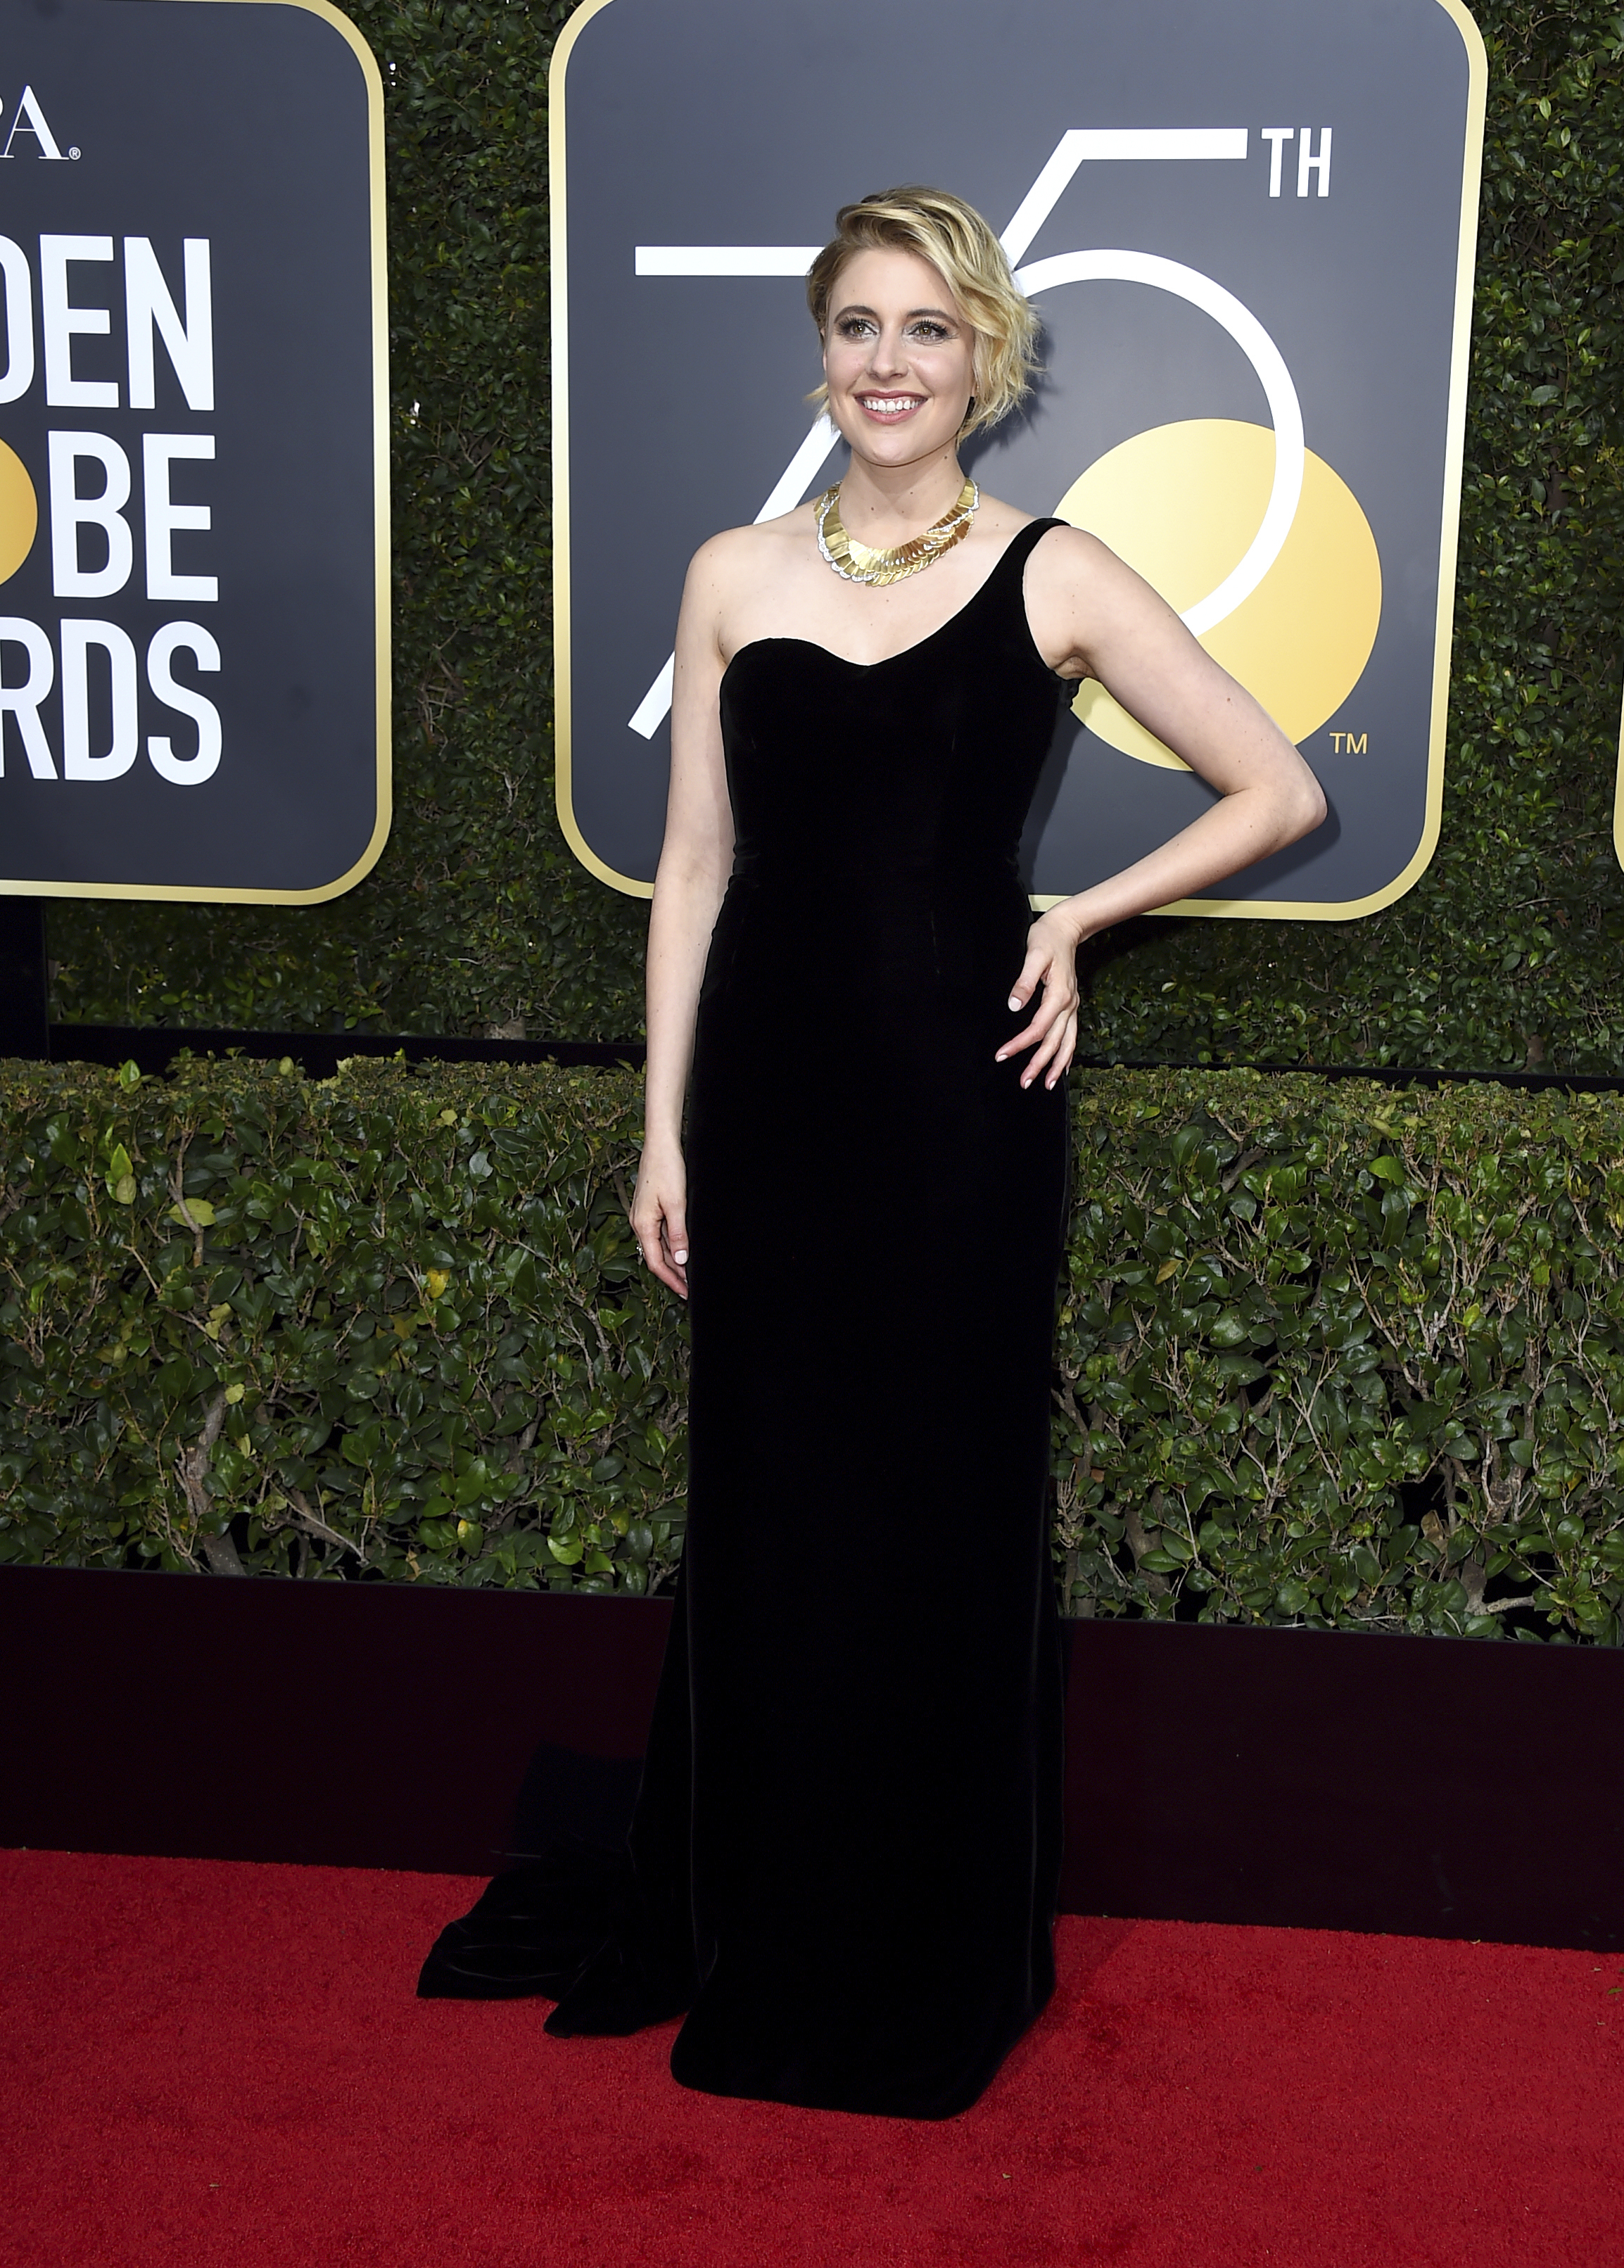 <div class='meta'><div class='origin-logo' data-origin='AP'></div><span class='caption-text' data-credit='Jordan Strauss/Invision/AP'>Greta Gerwig arrives at the 75th annual Golden Globe Awards at the Beverly Hilton Hotel on Sunday, Jan. 7, 2018, in Beverly Hills, Calif.</span></div>